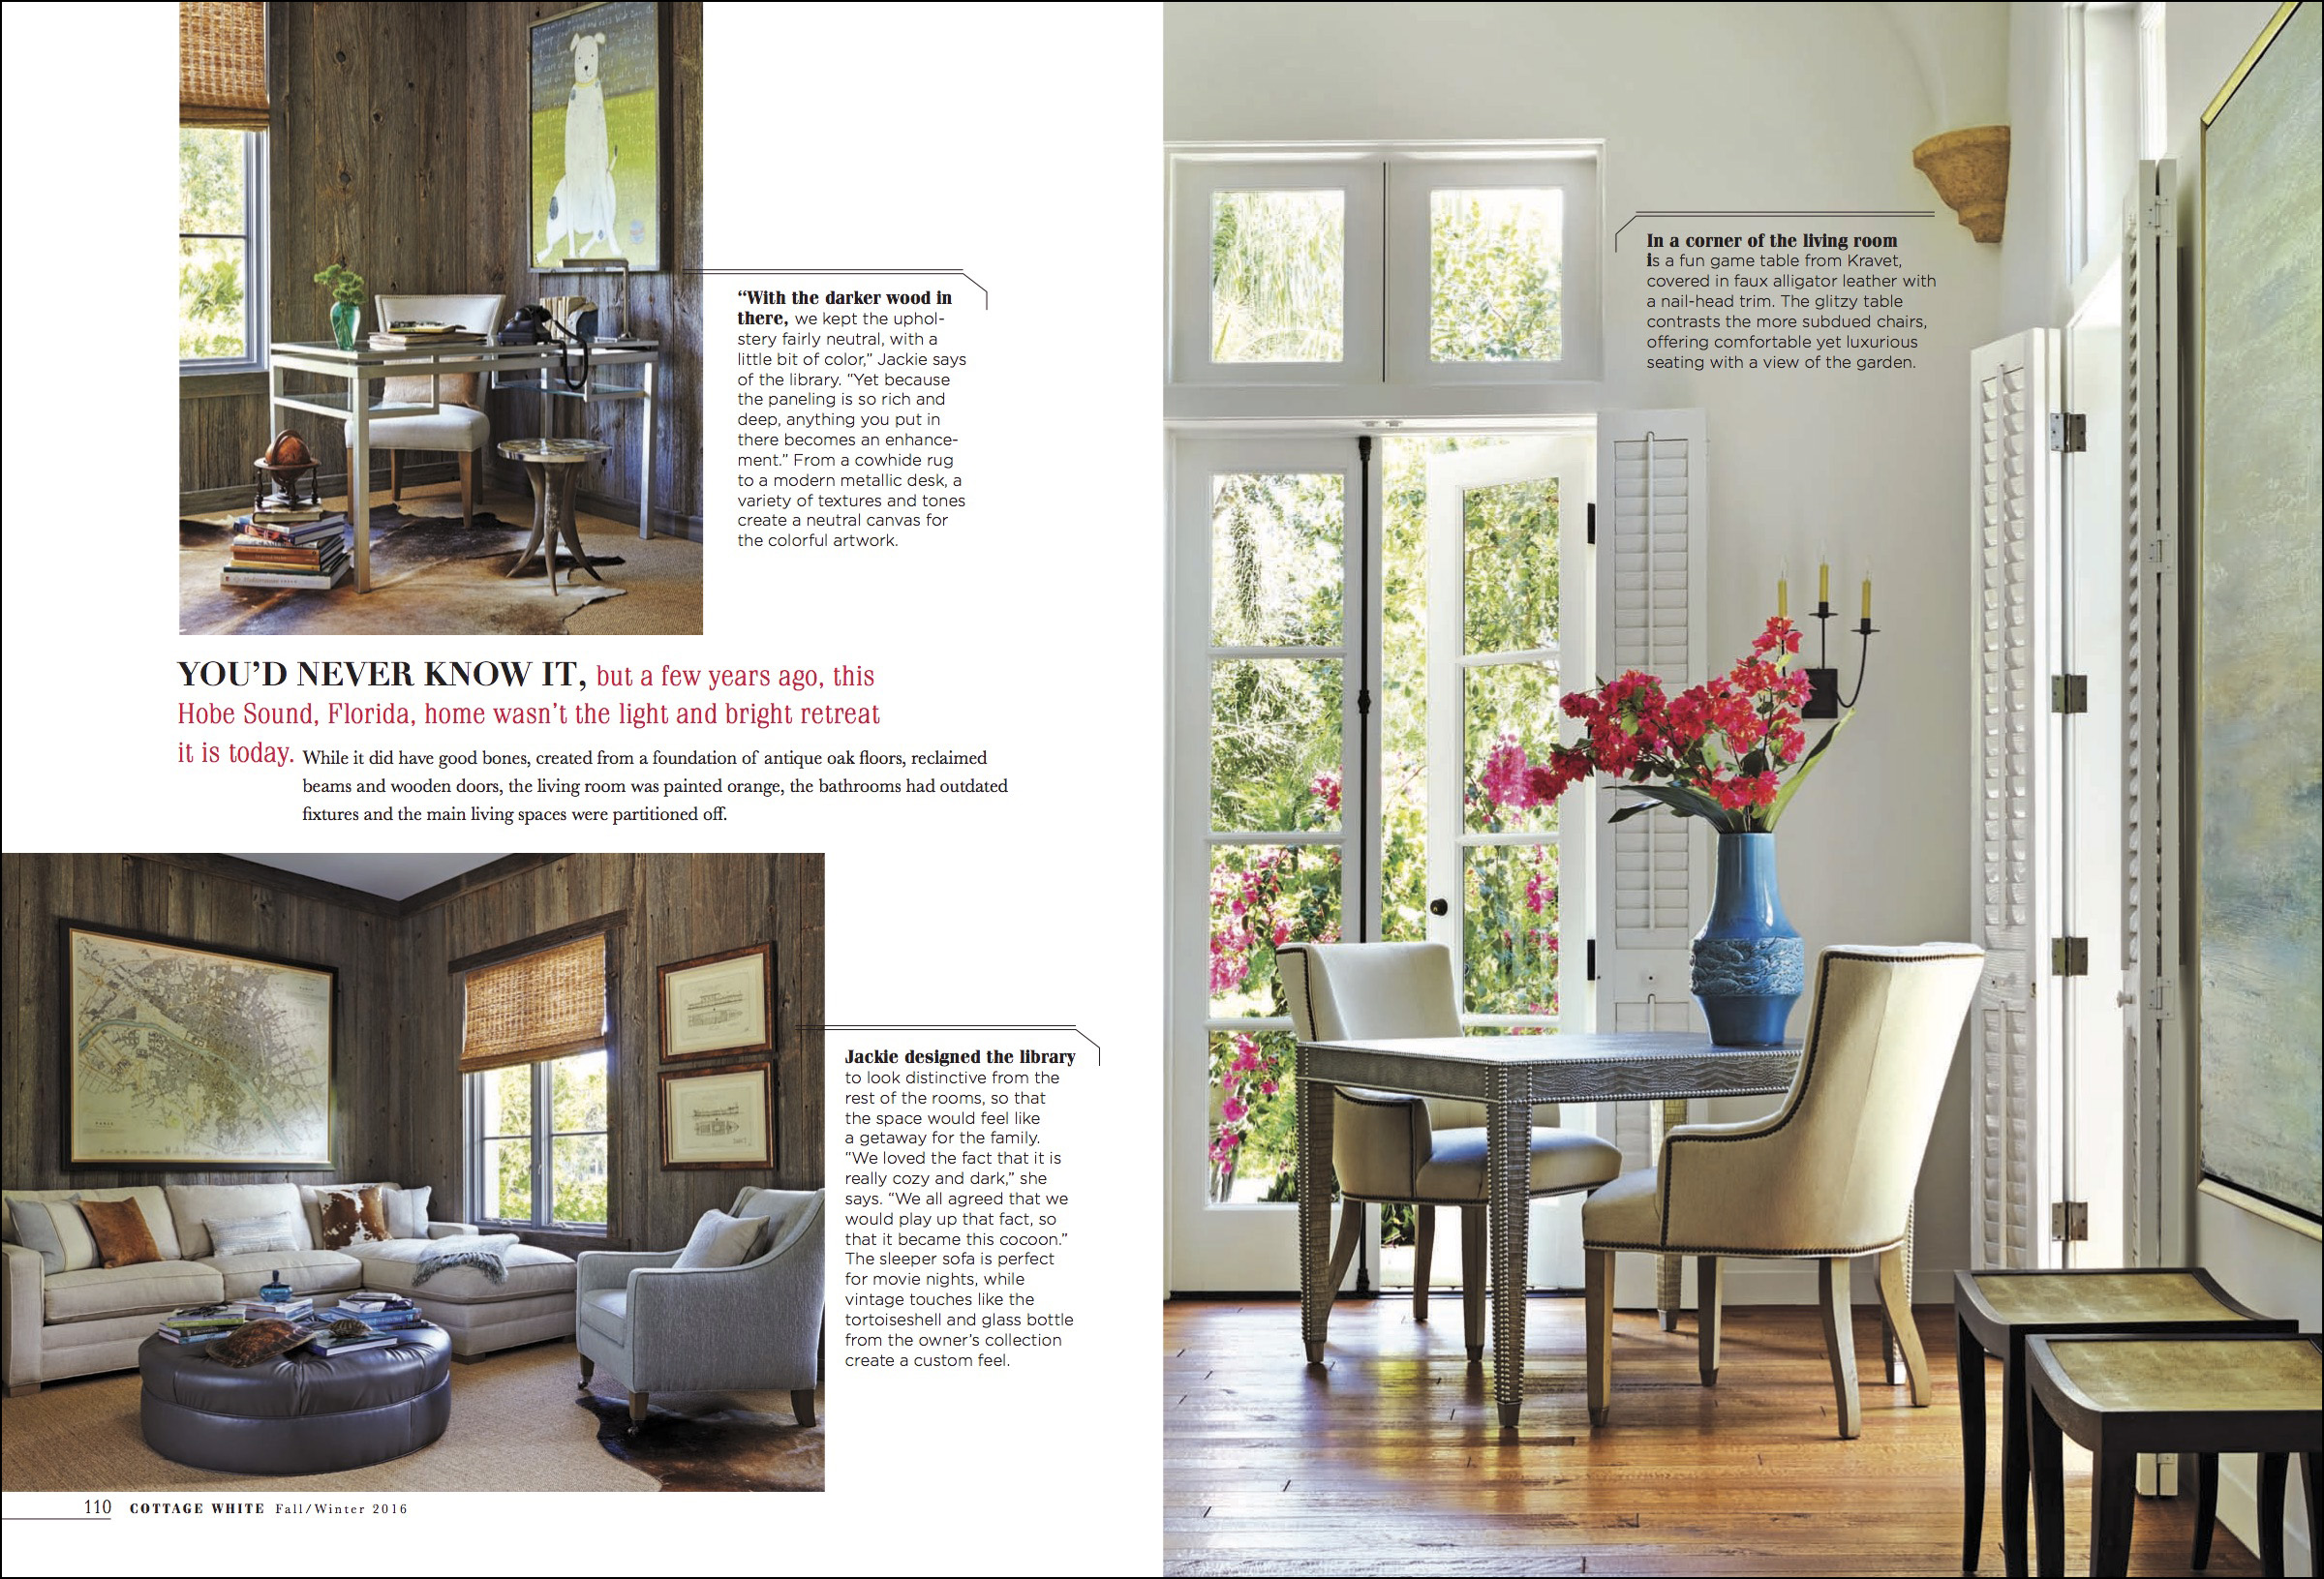 cottage white magazine design article, hobe sound home